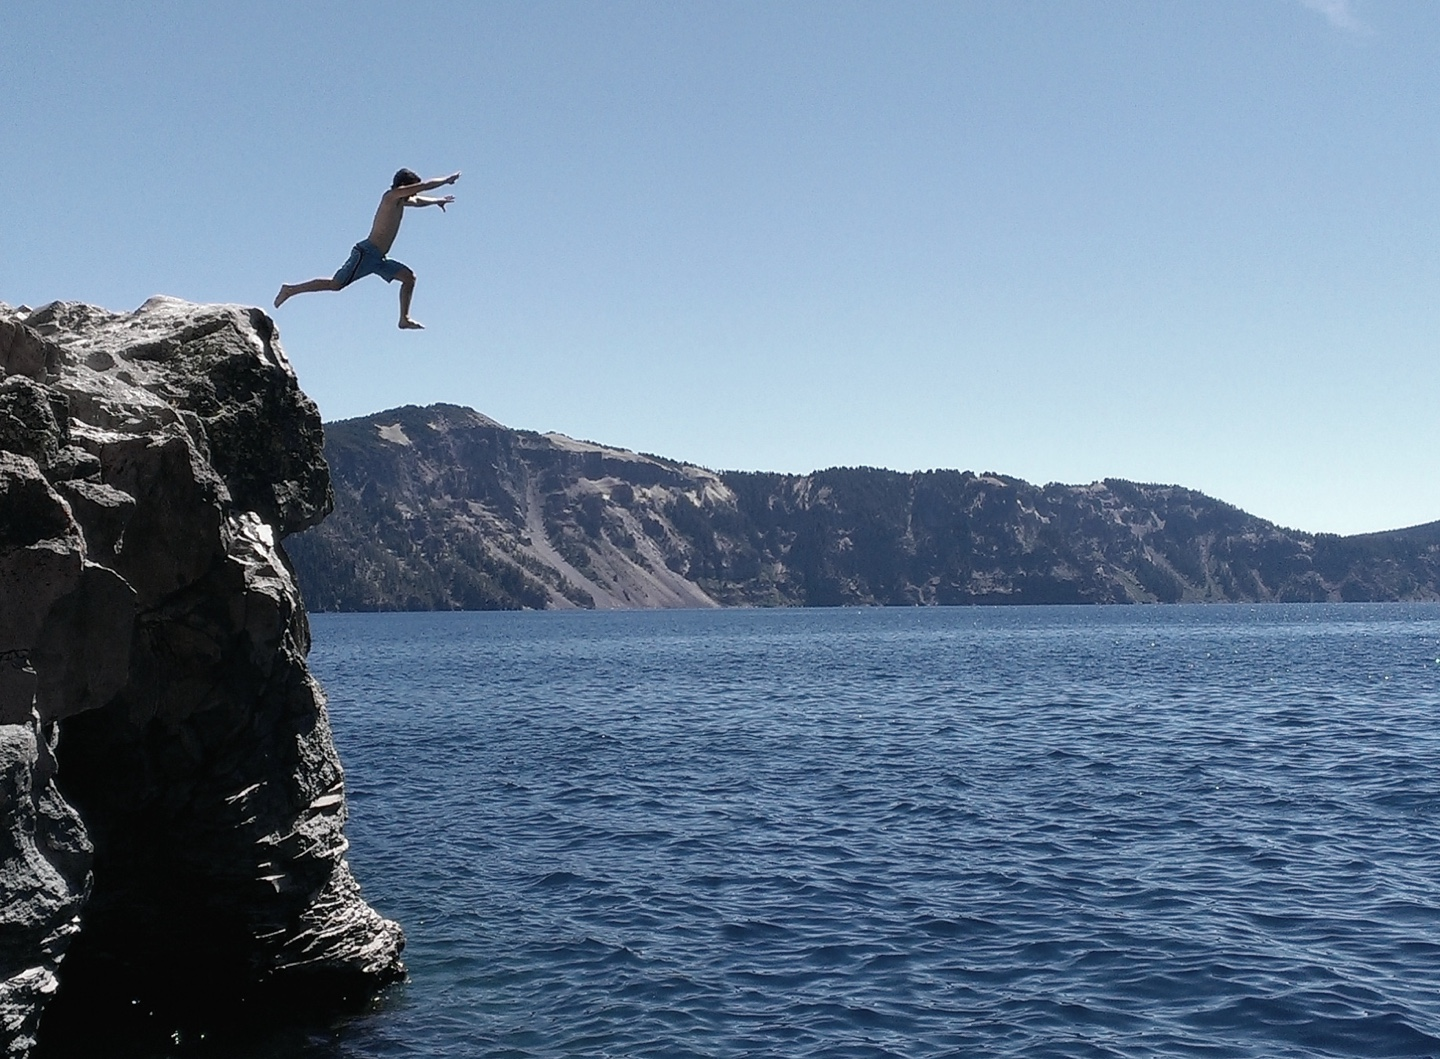 [photo: Jumping into Crater Lake]